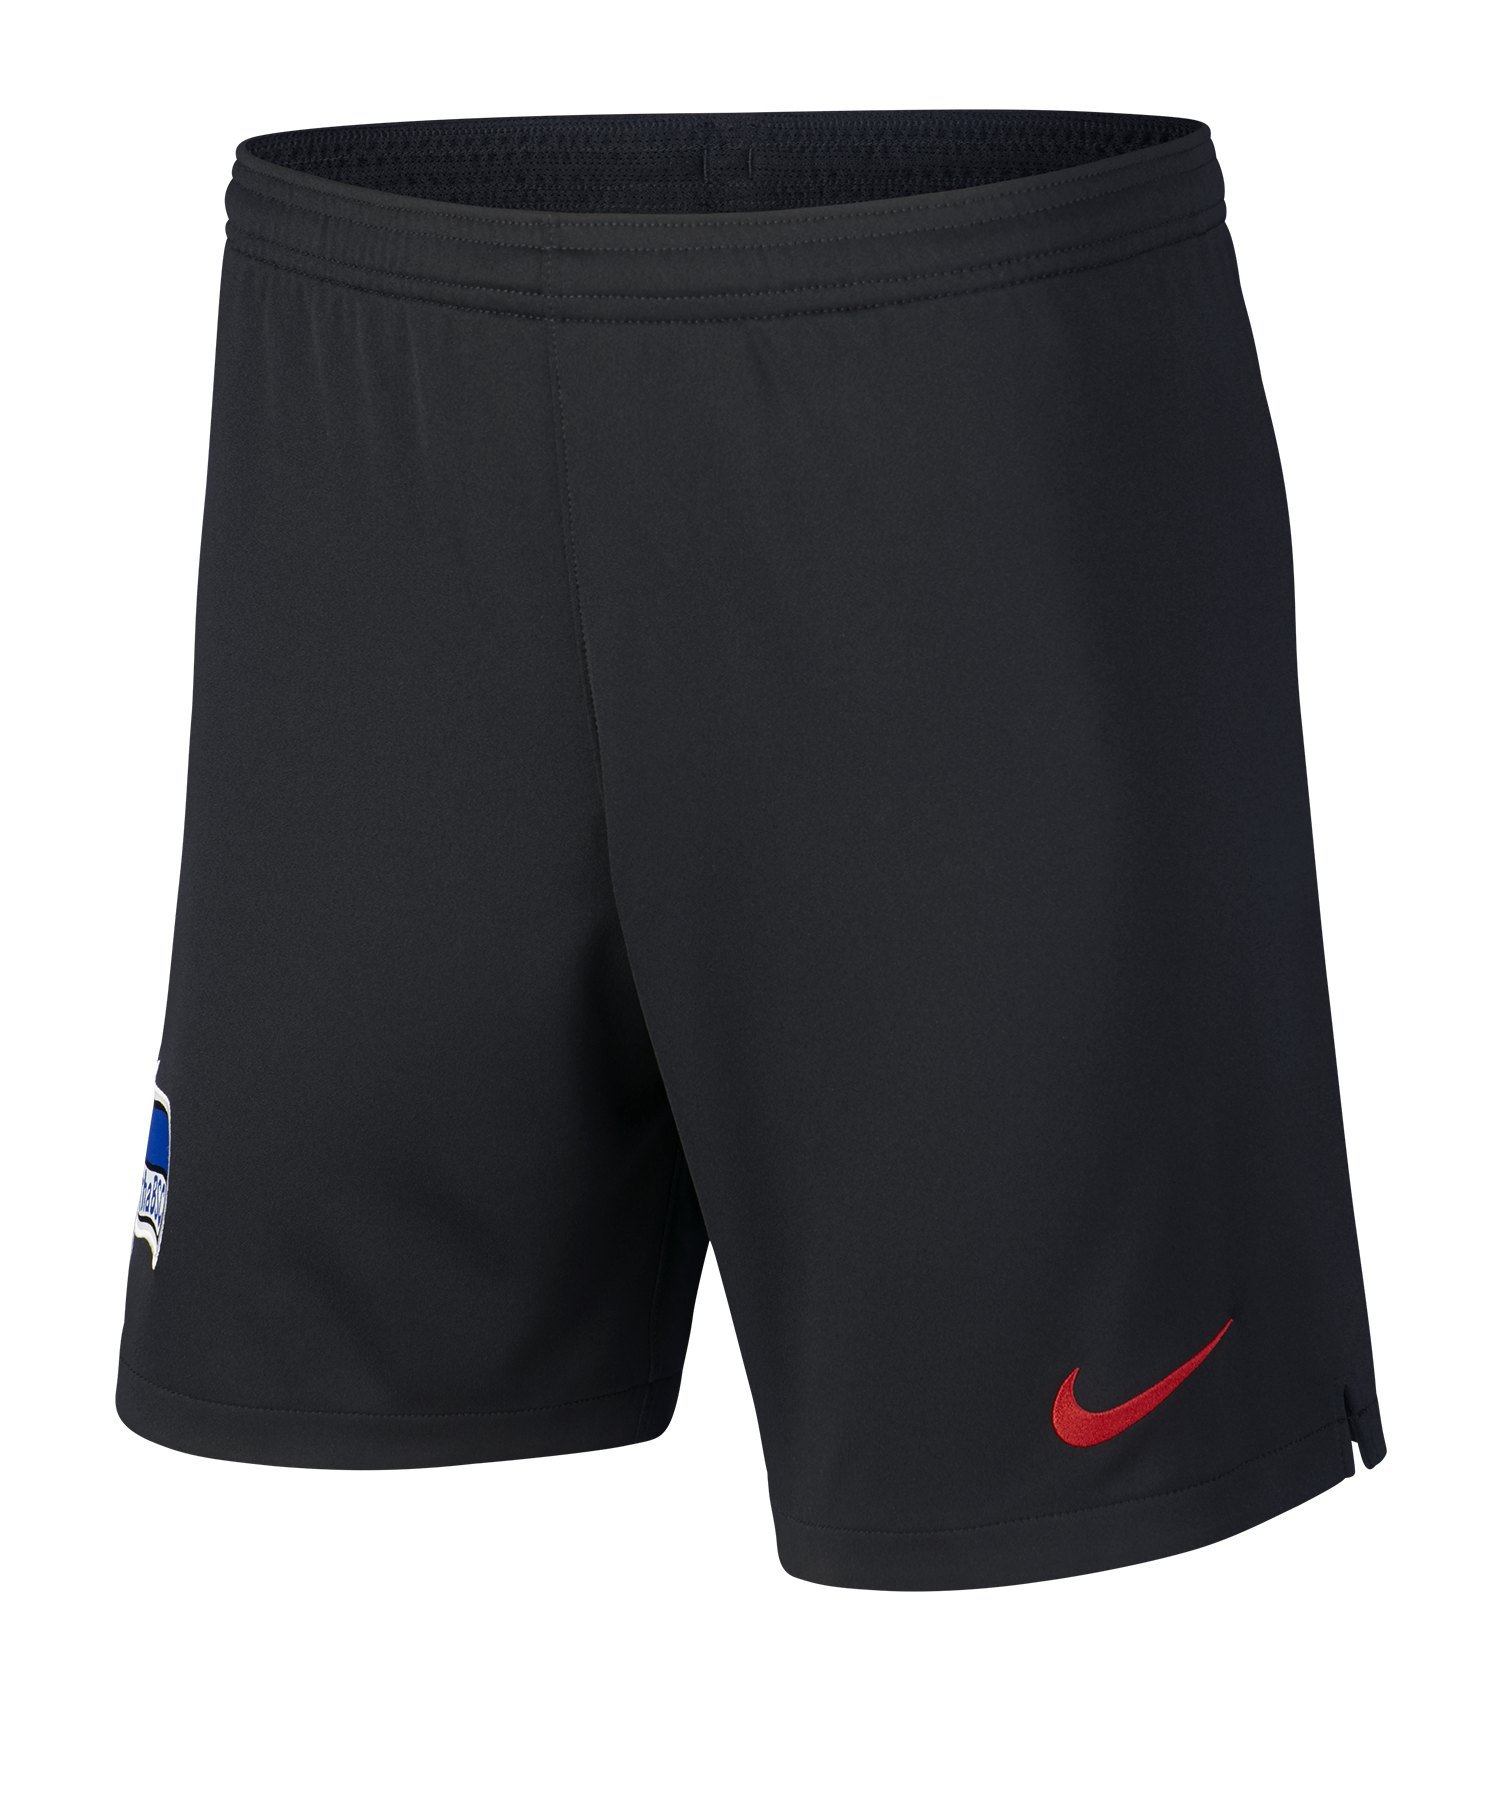 Nike Hertha BSC Berlin Short Away 19/20 F010 - schwarz